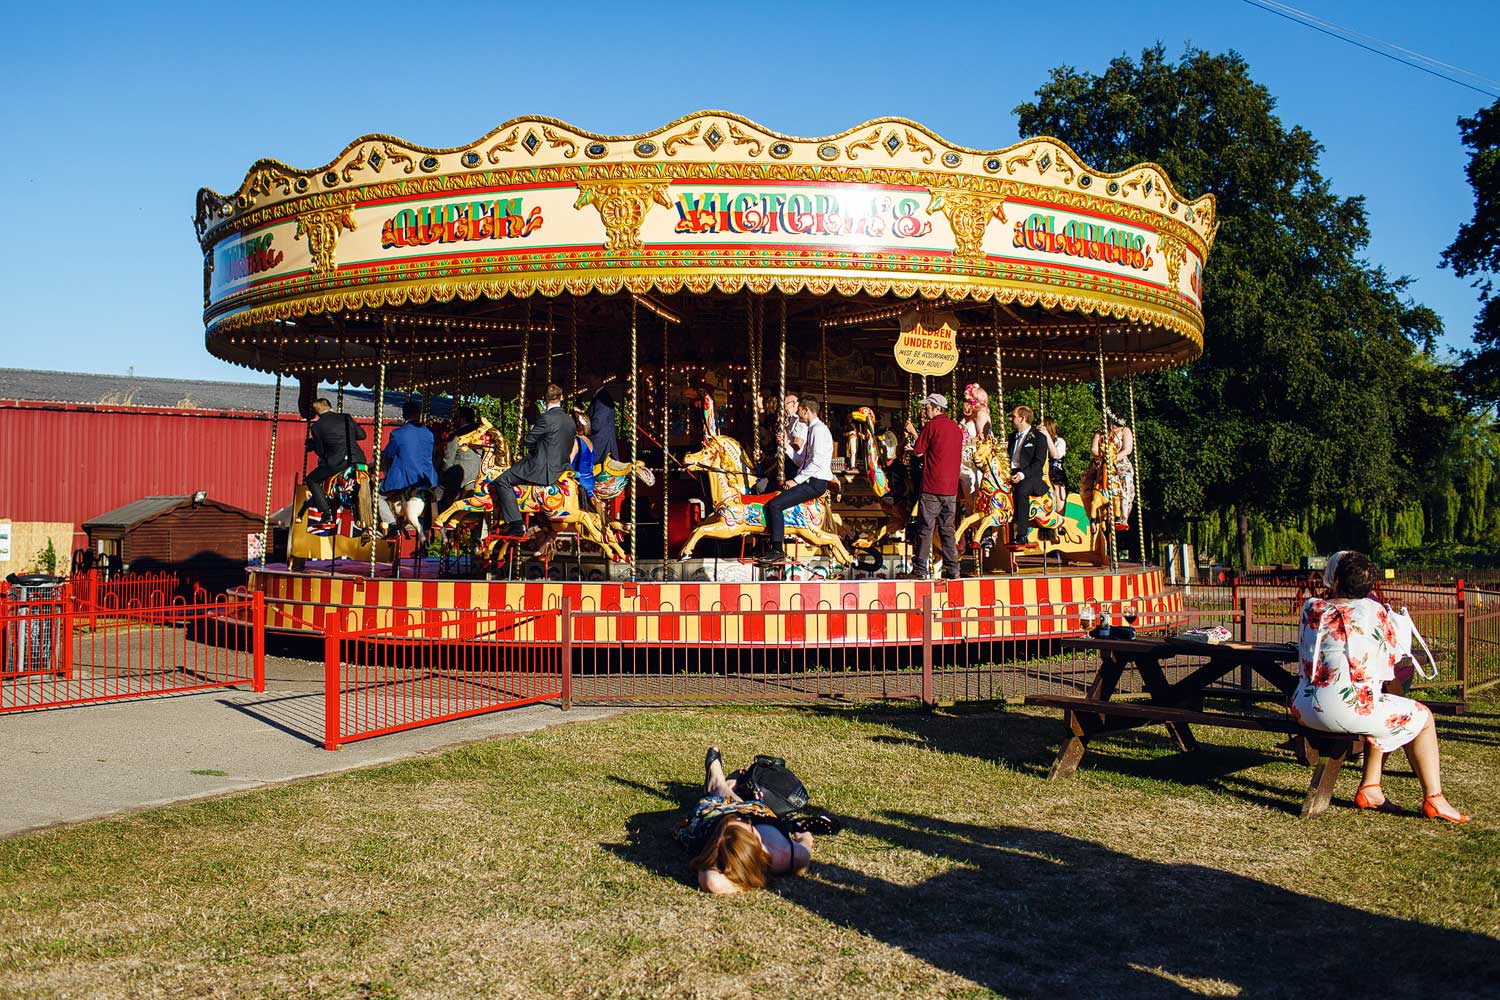 A carousel at Bressingham Hall